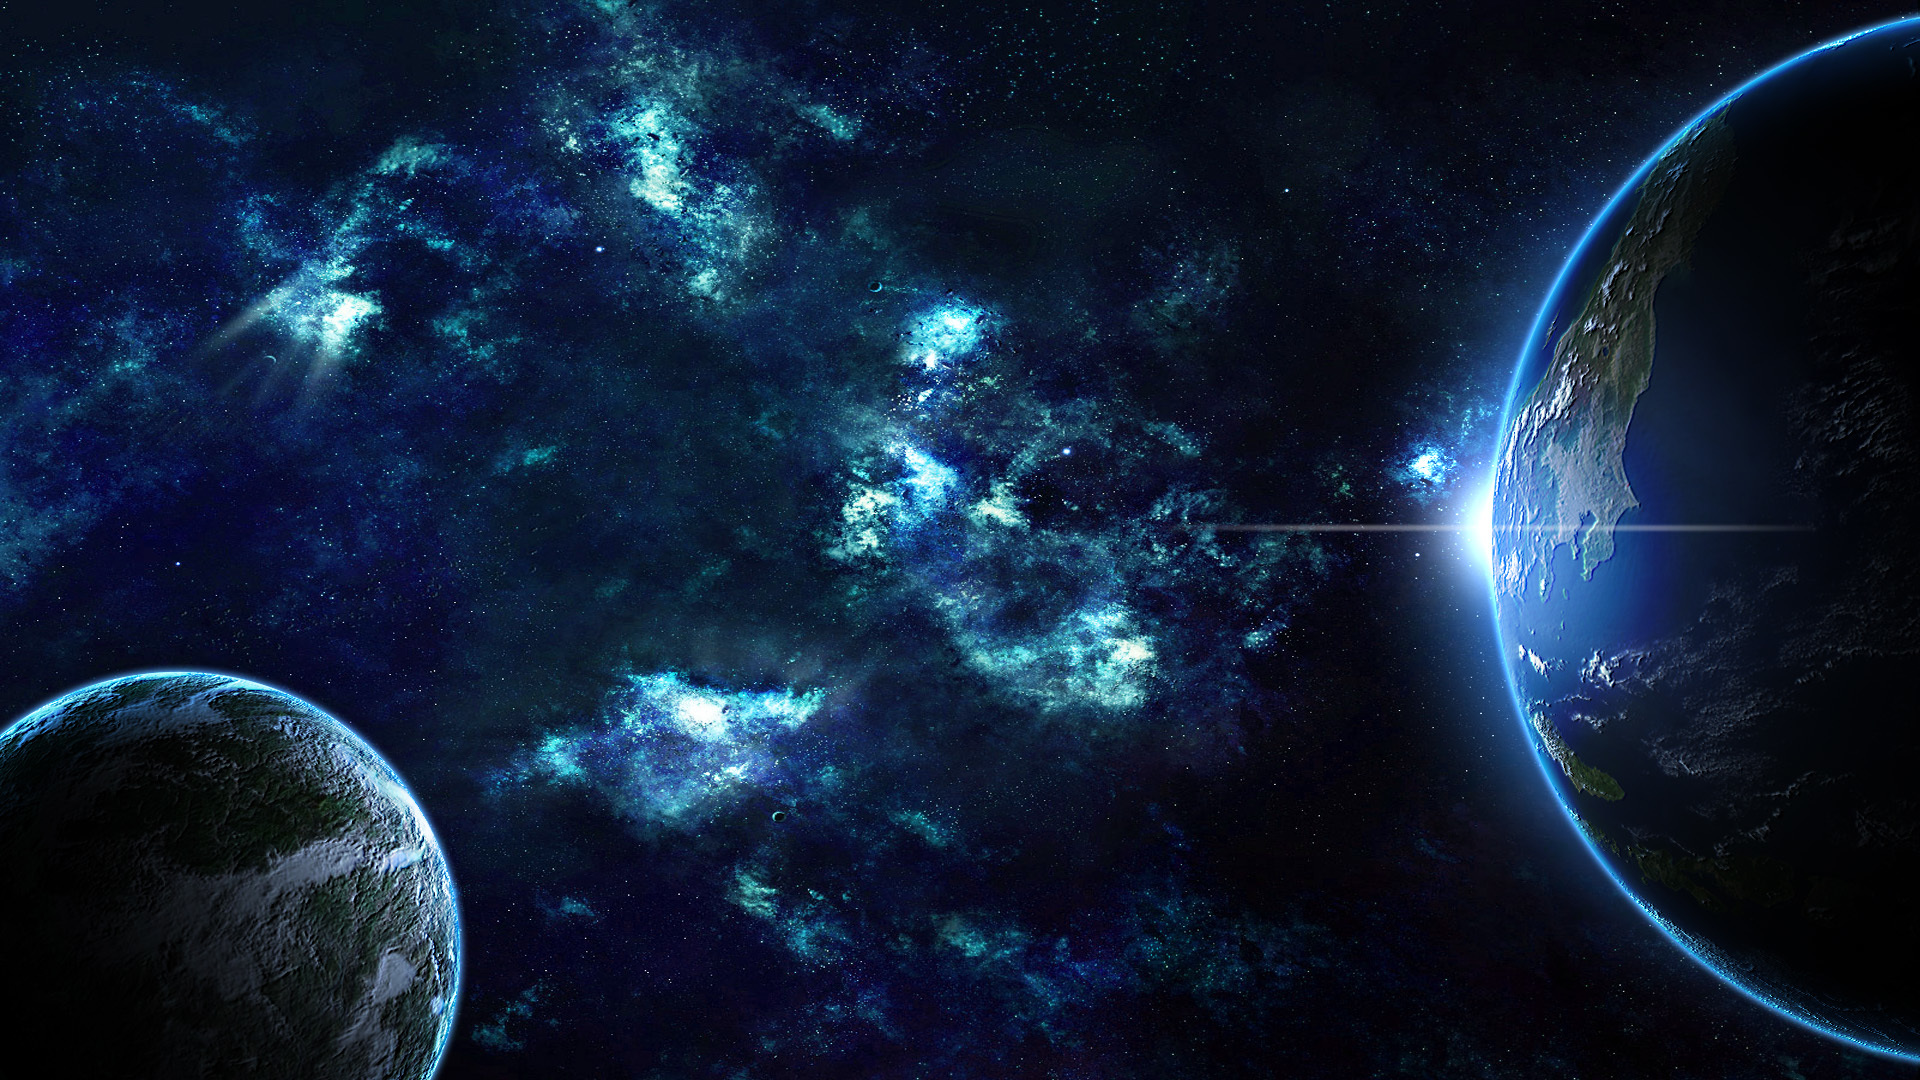 3d wallpaper colorful planets - photo #20